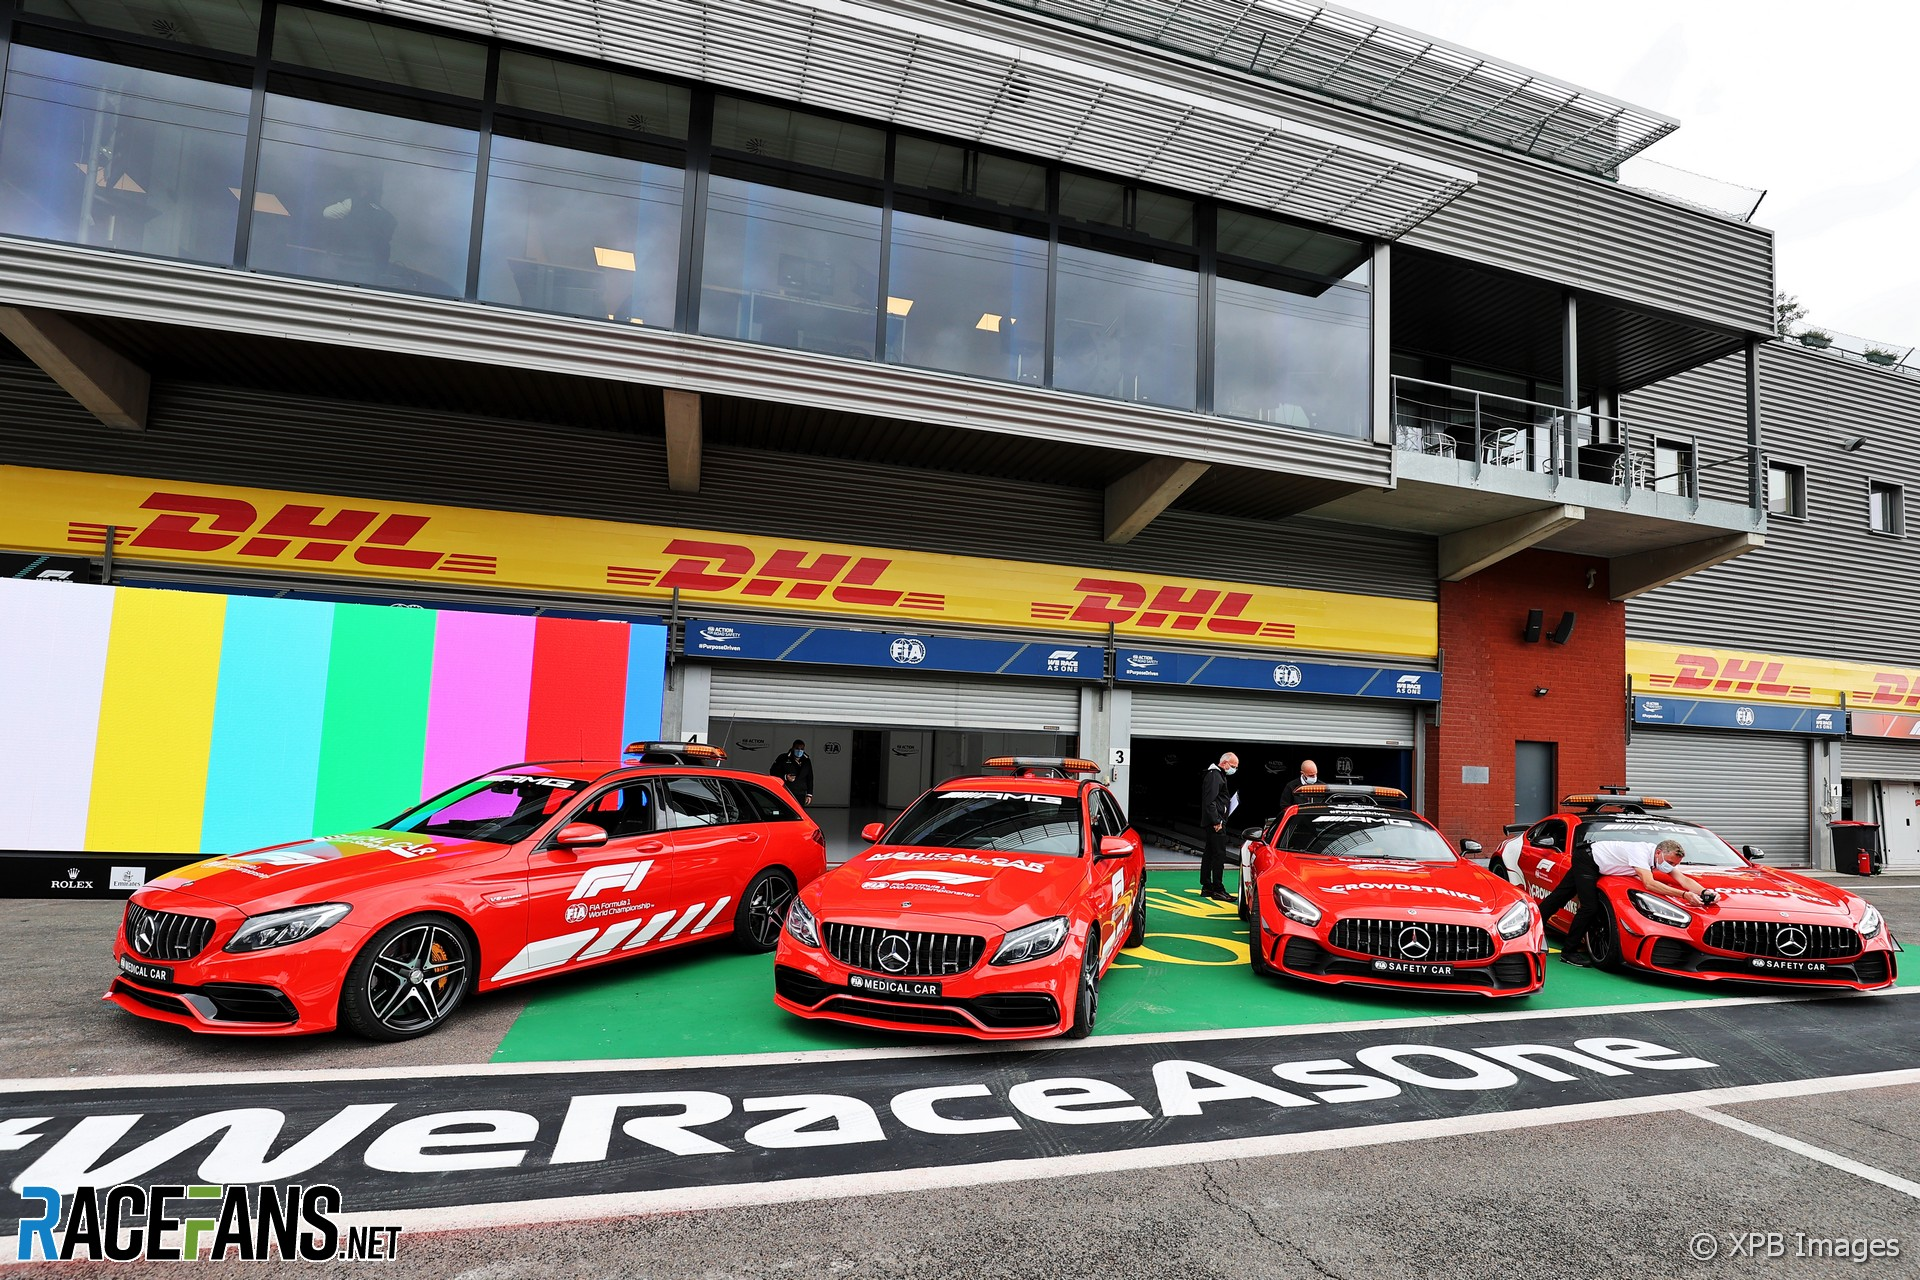 Official course cars, Spa-Francorchamps, 2021